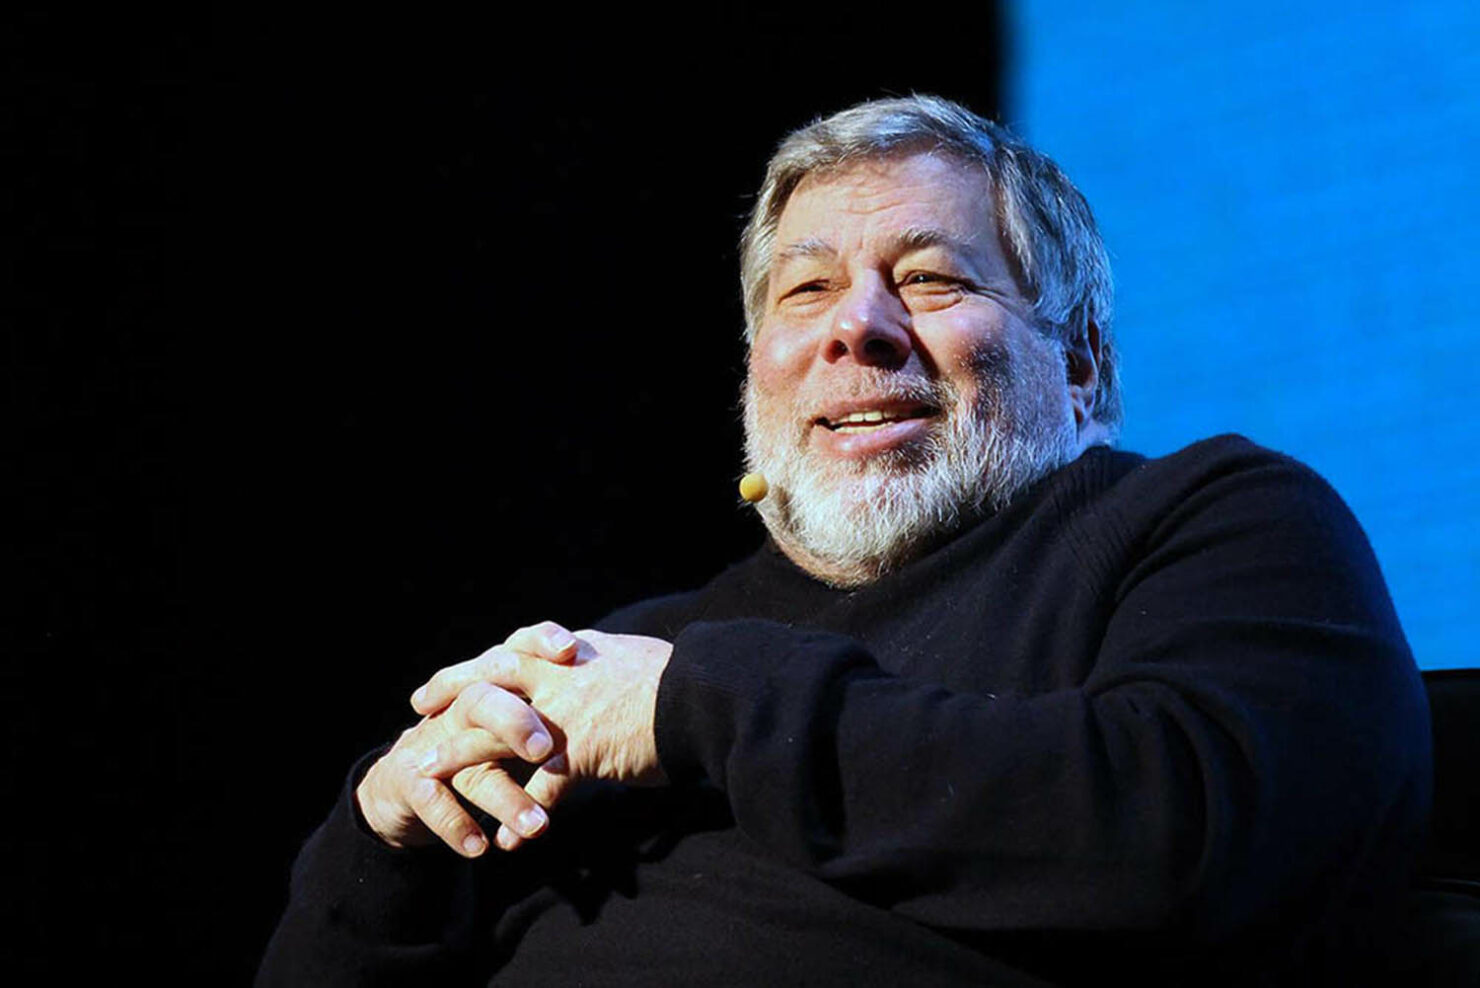 Steve Wozniak says the Apple Watch is his favorite piece of technology